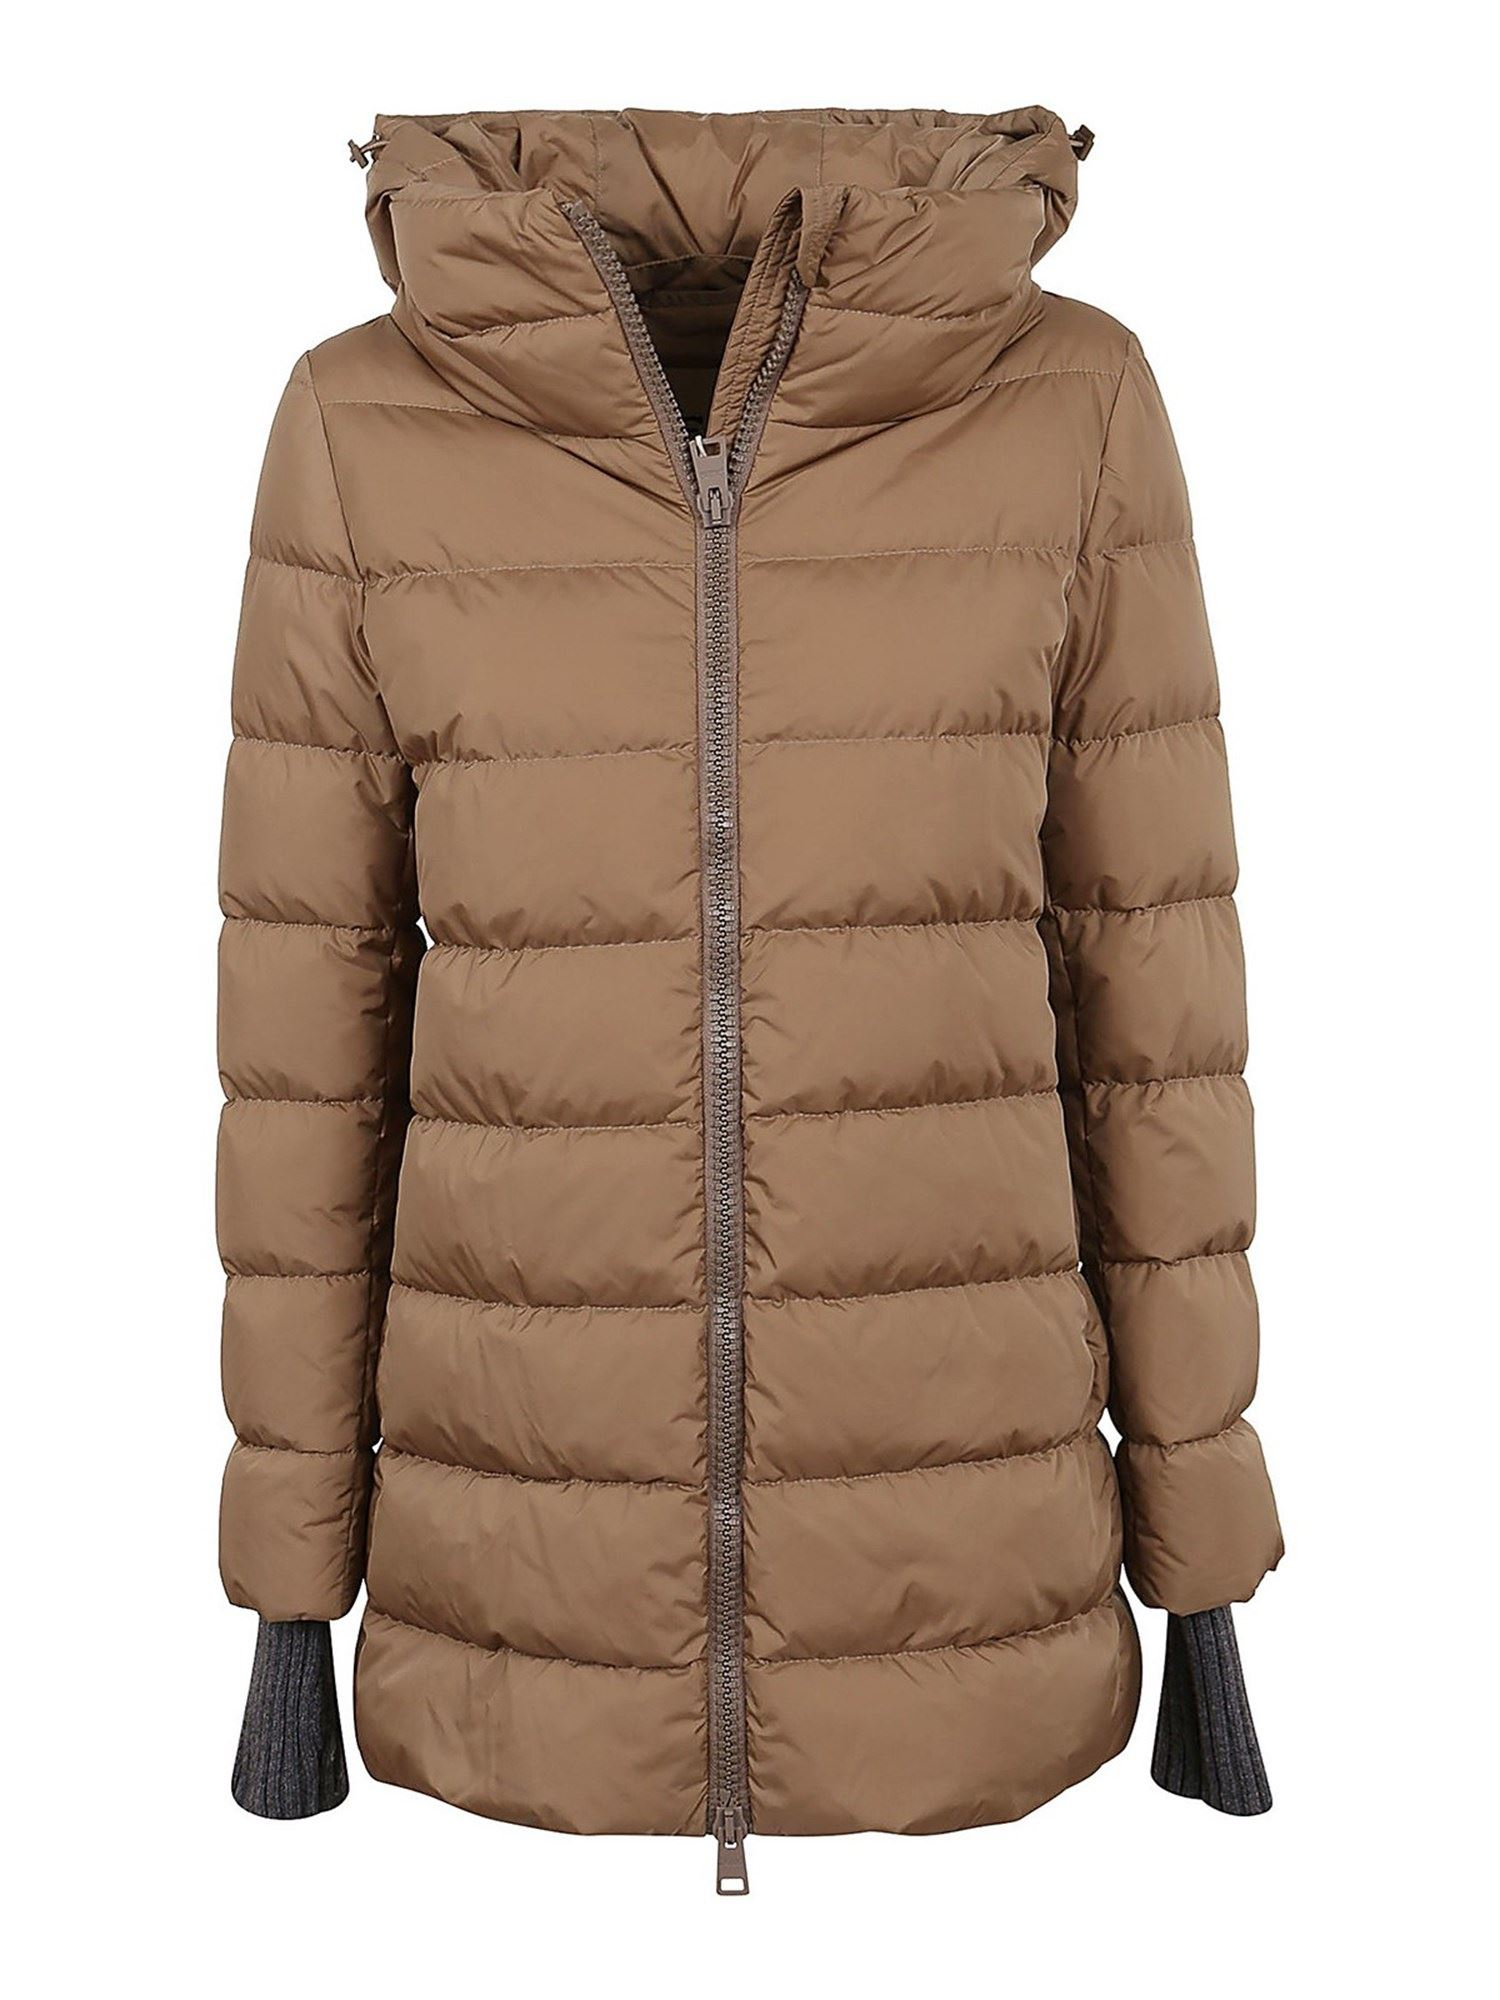 Herno POLAR-TECH DOWN JACKET IN BEIGE